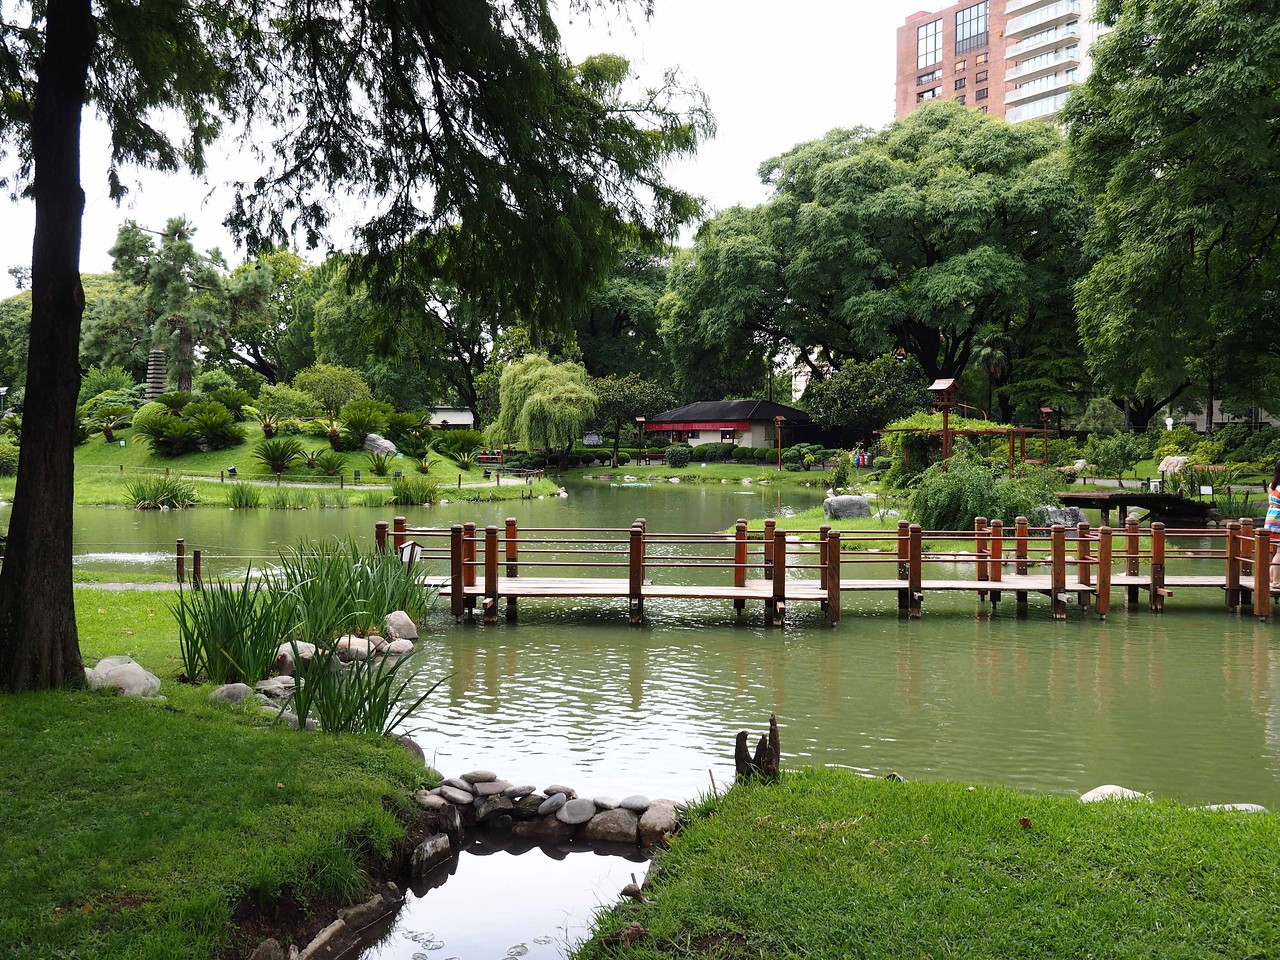 Japanese Garden, Palermo district